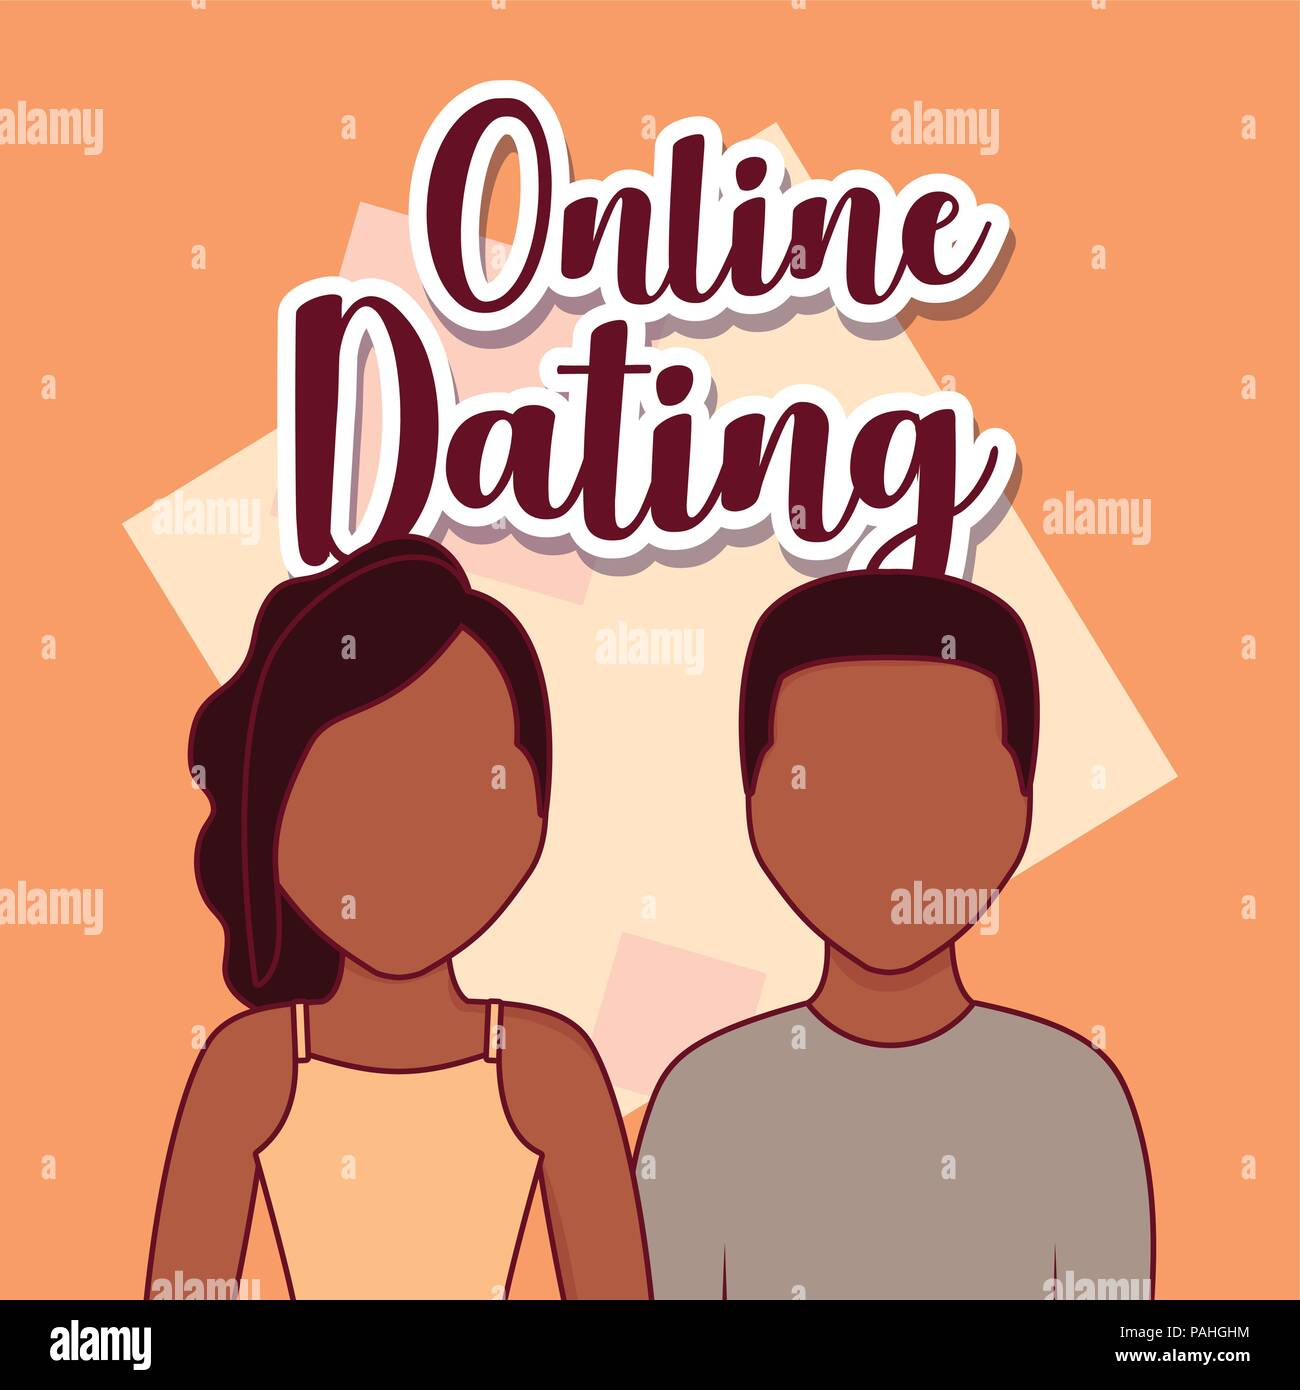 Online dating design with avatar couple over orange background, colorful design. vector illustration Stock Vector